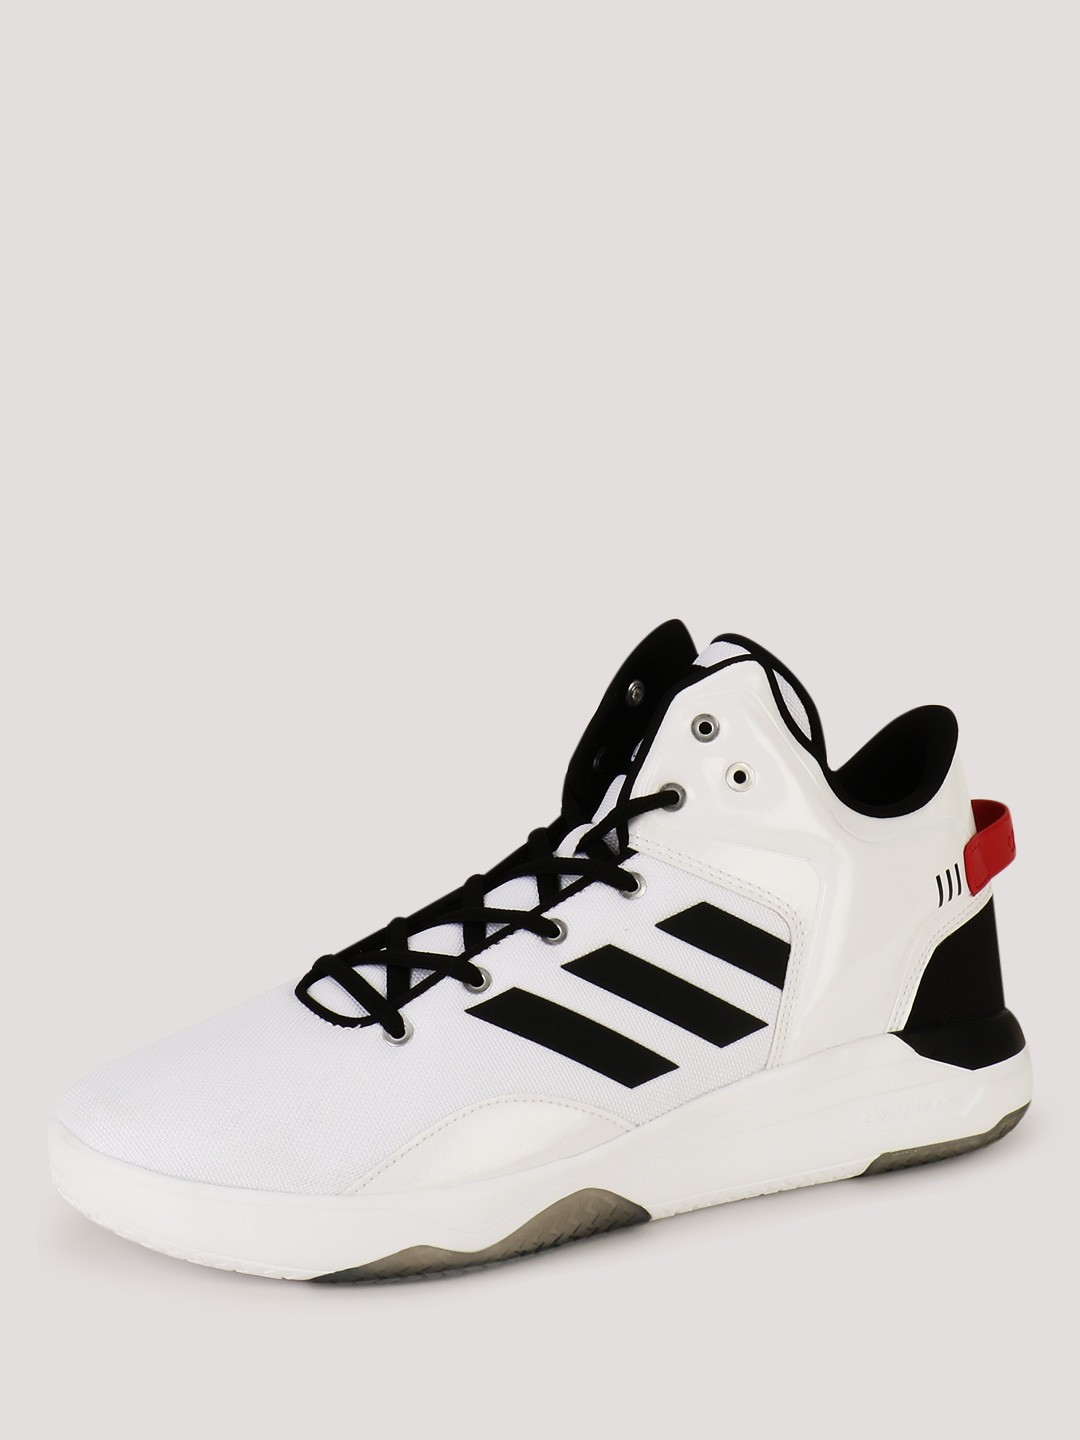 Adidas Mens Adidas Neo Star Wars Cloudfoam Revival Mid Shoes